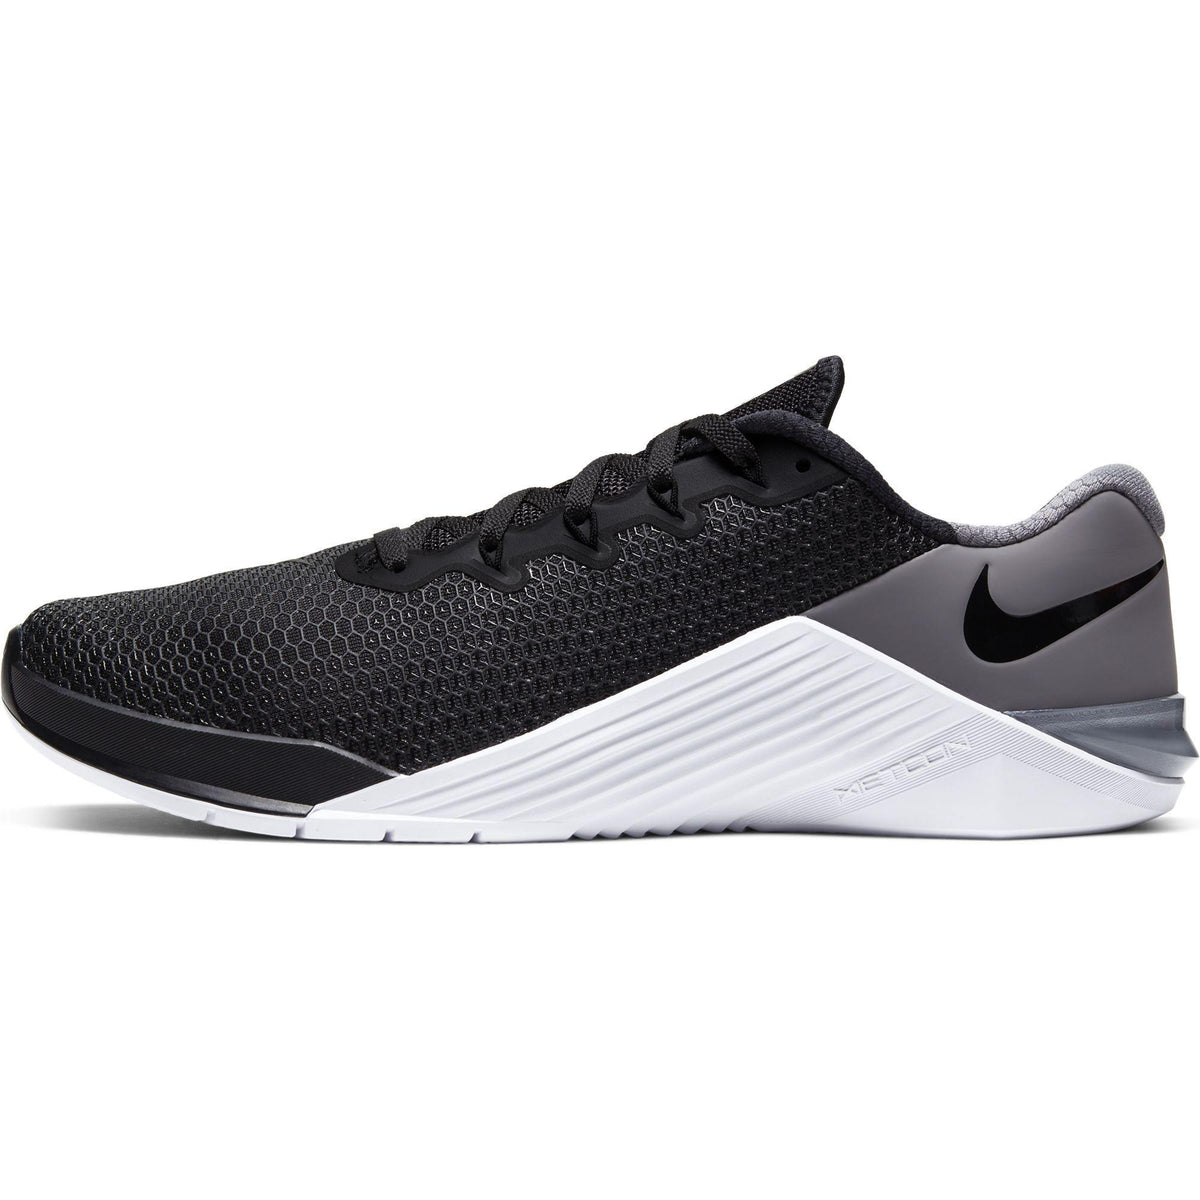 Nike Metcon 5 Training Shoe Mens